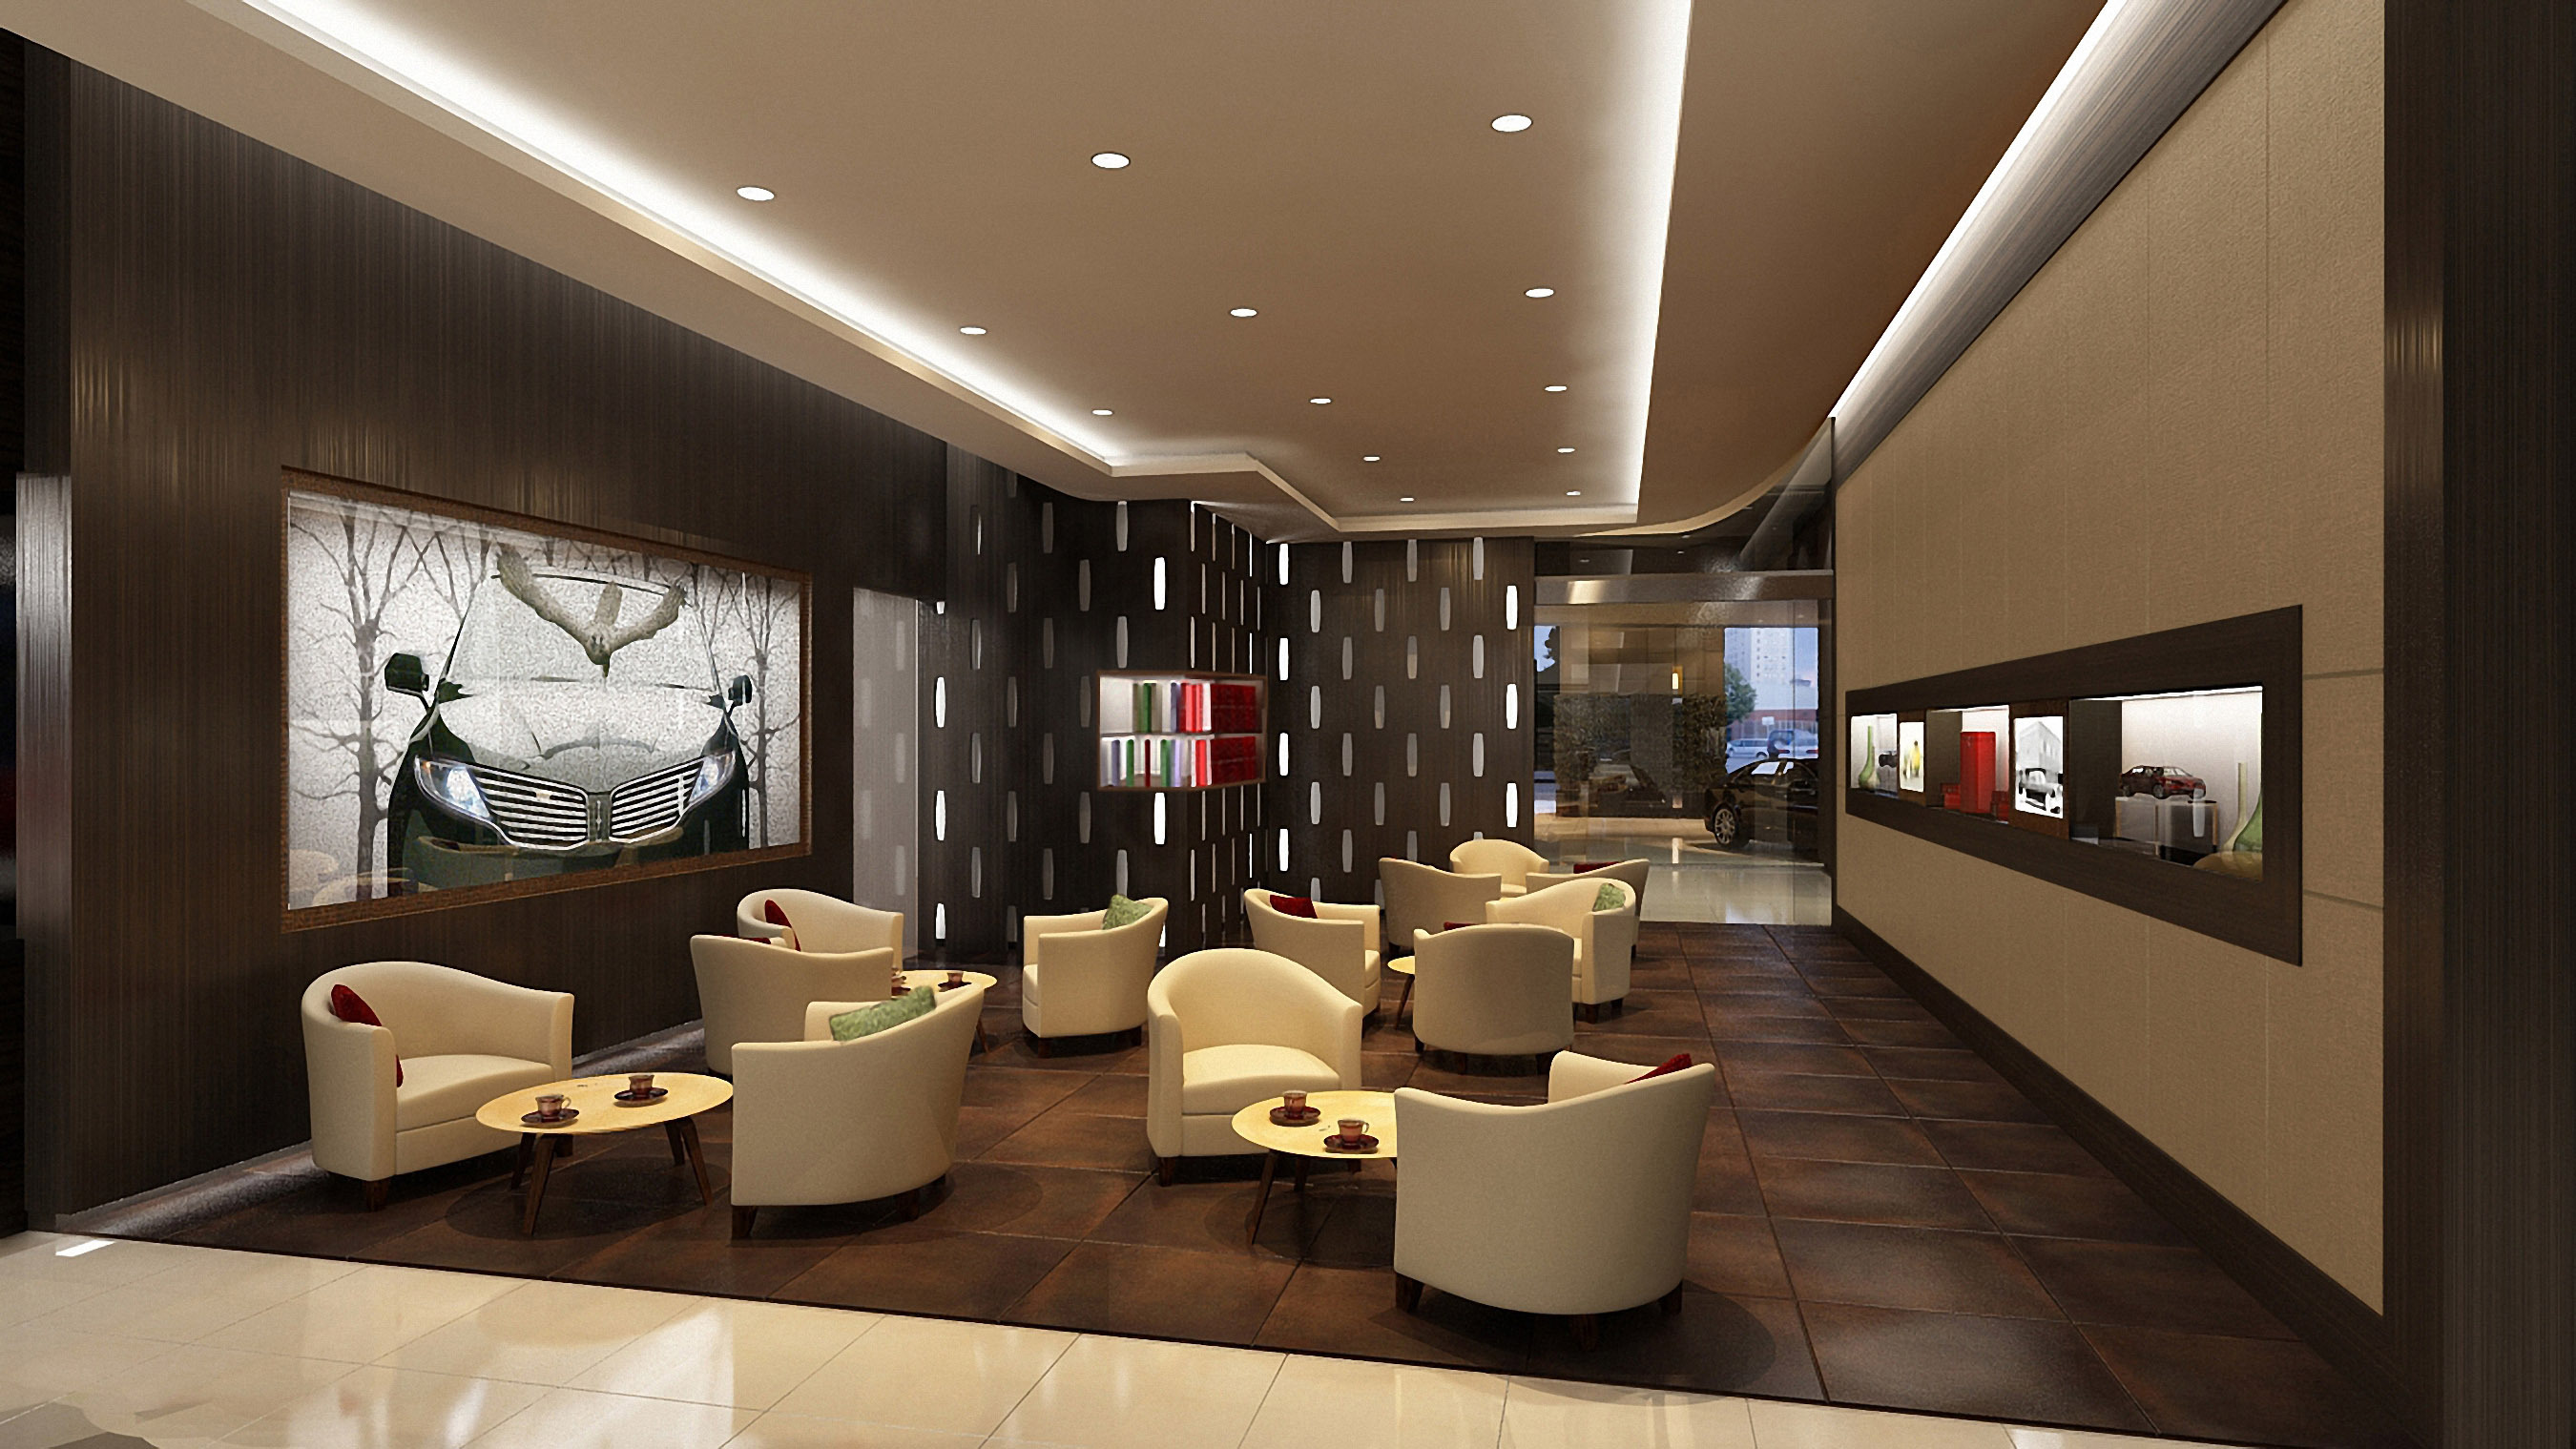 The tea room is part of the personally crafted experience created by Lincoln dealerships in China. The overall effect is a warm, inviting environment that customers associate with the living room of a home or a five-star hotel lobby. (Photo: Business Wire)